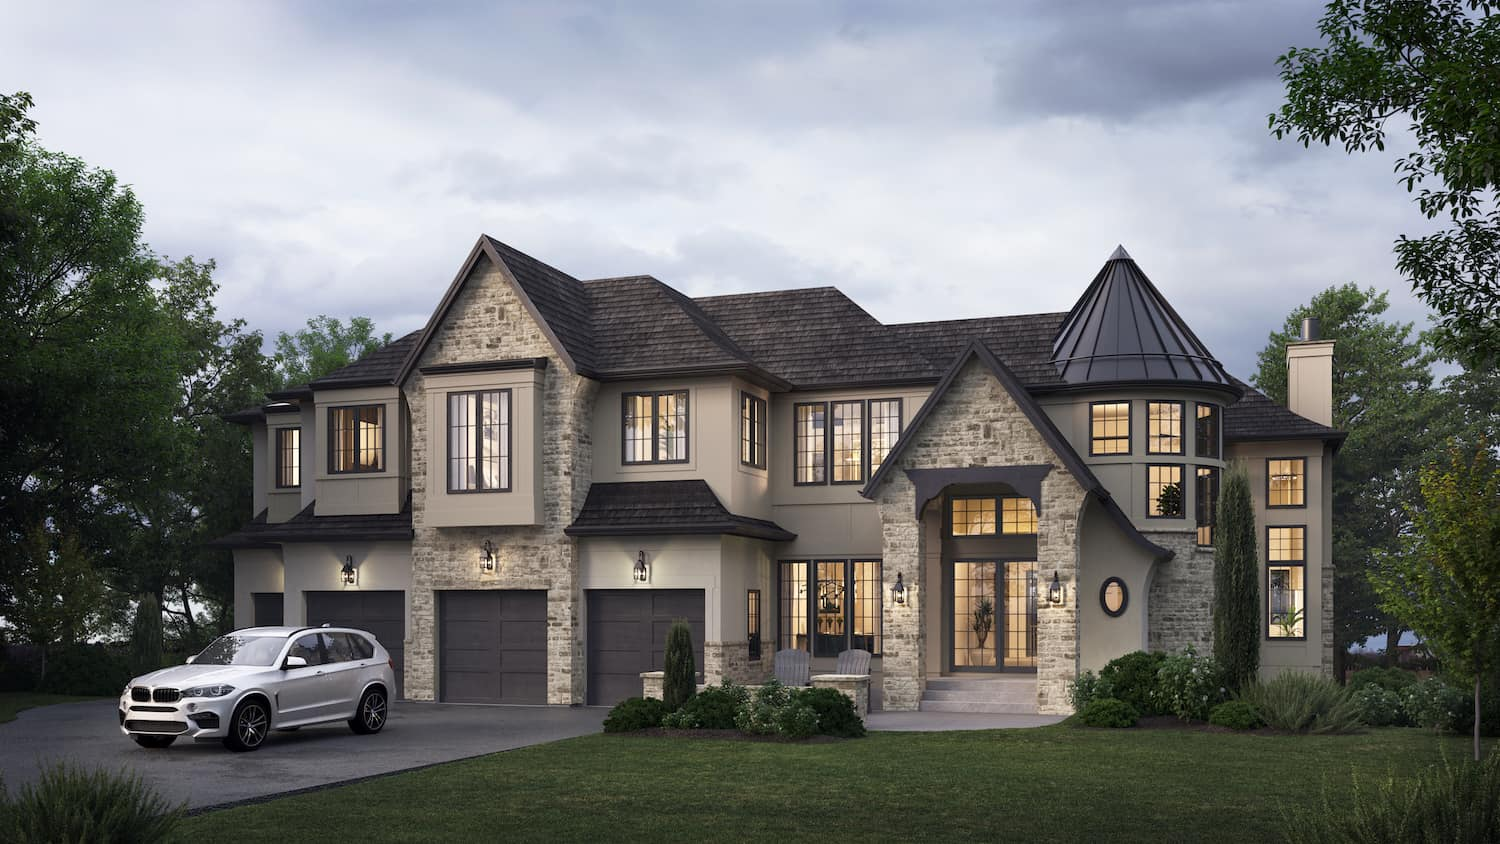 Aspen Heights French Manor Rendering luxury dream home